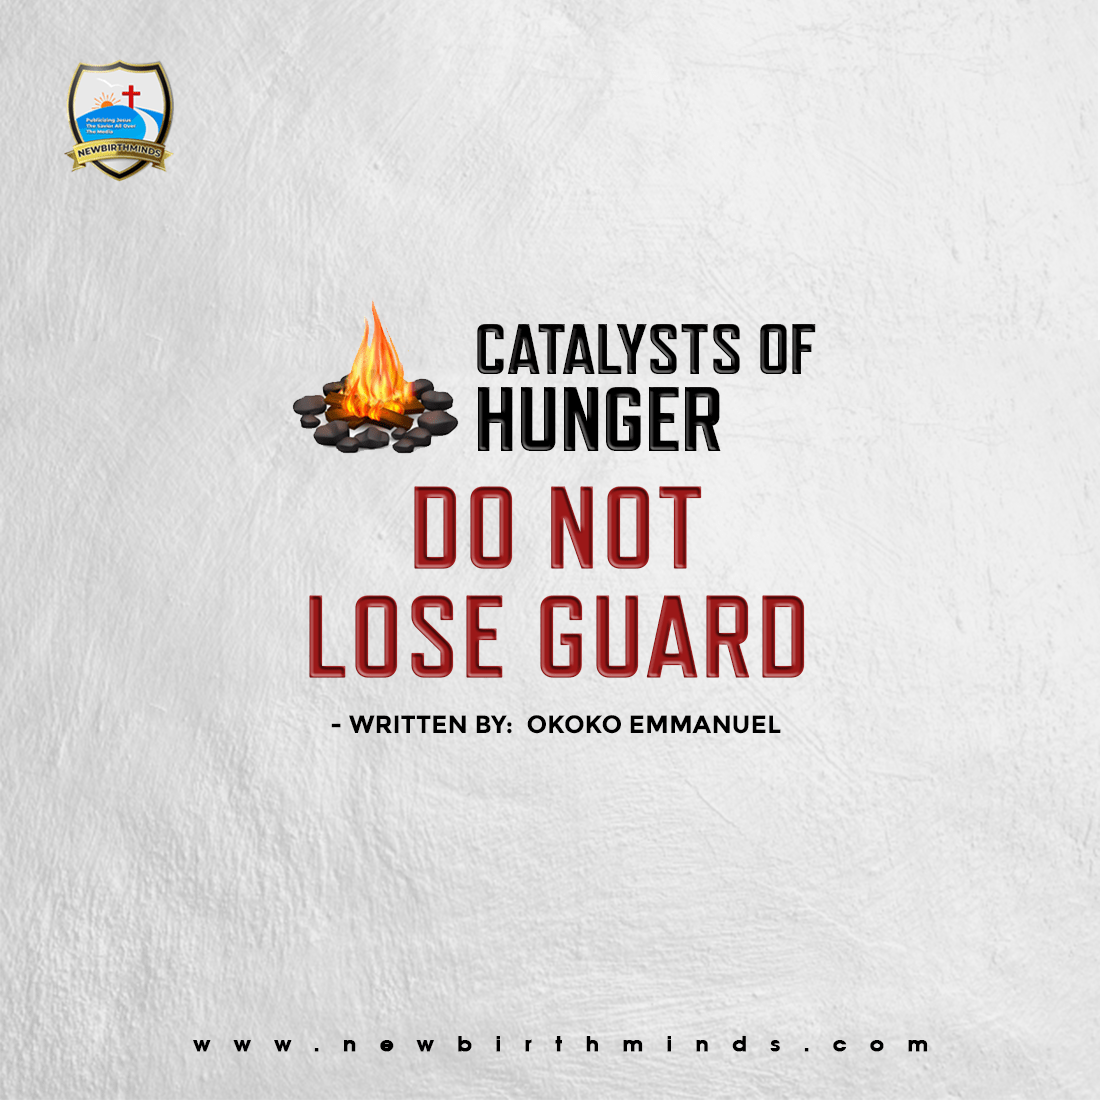 DO NOT LOSE GUARD